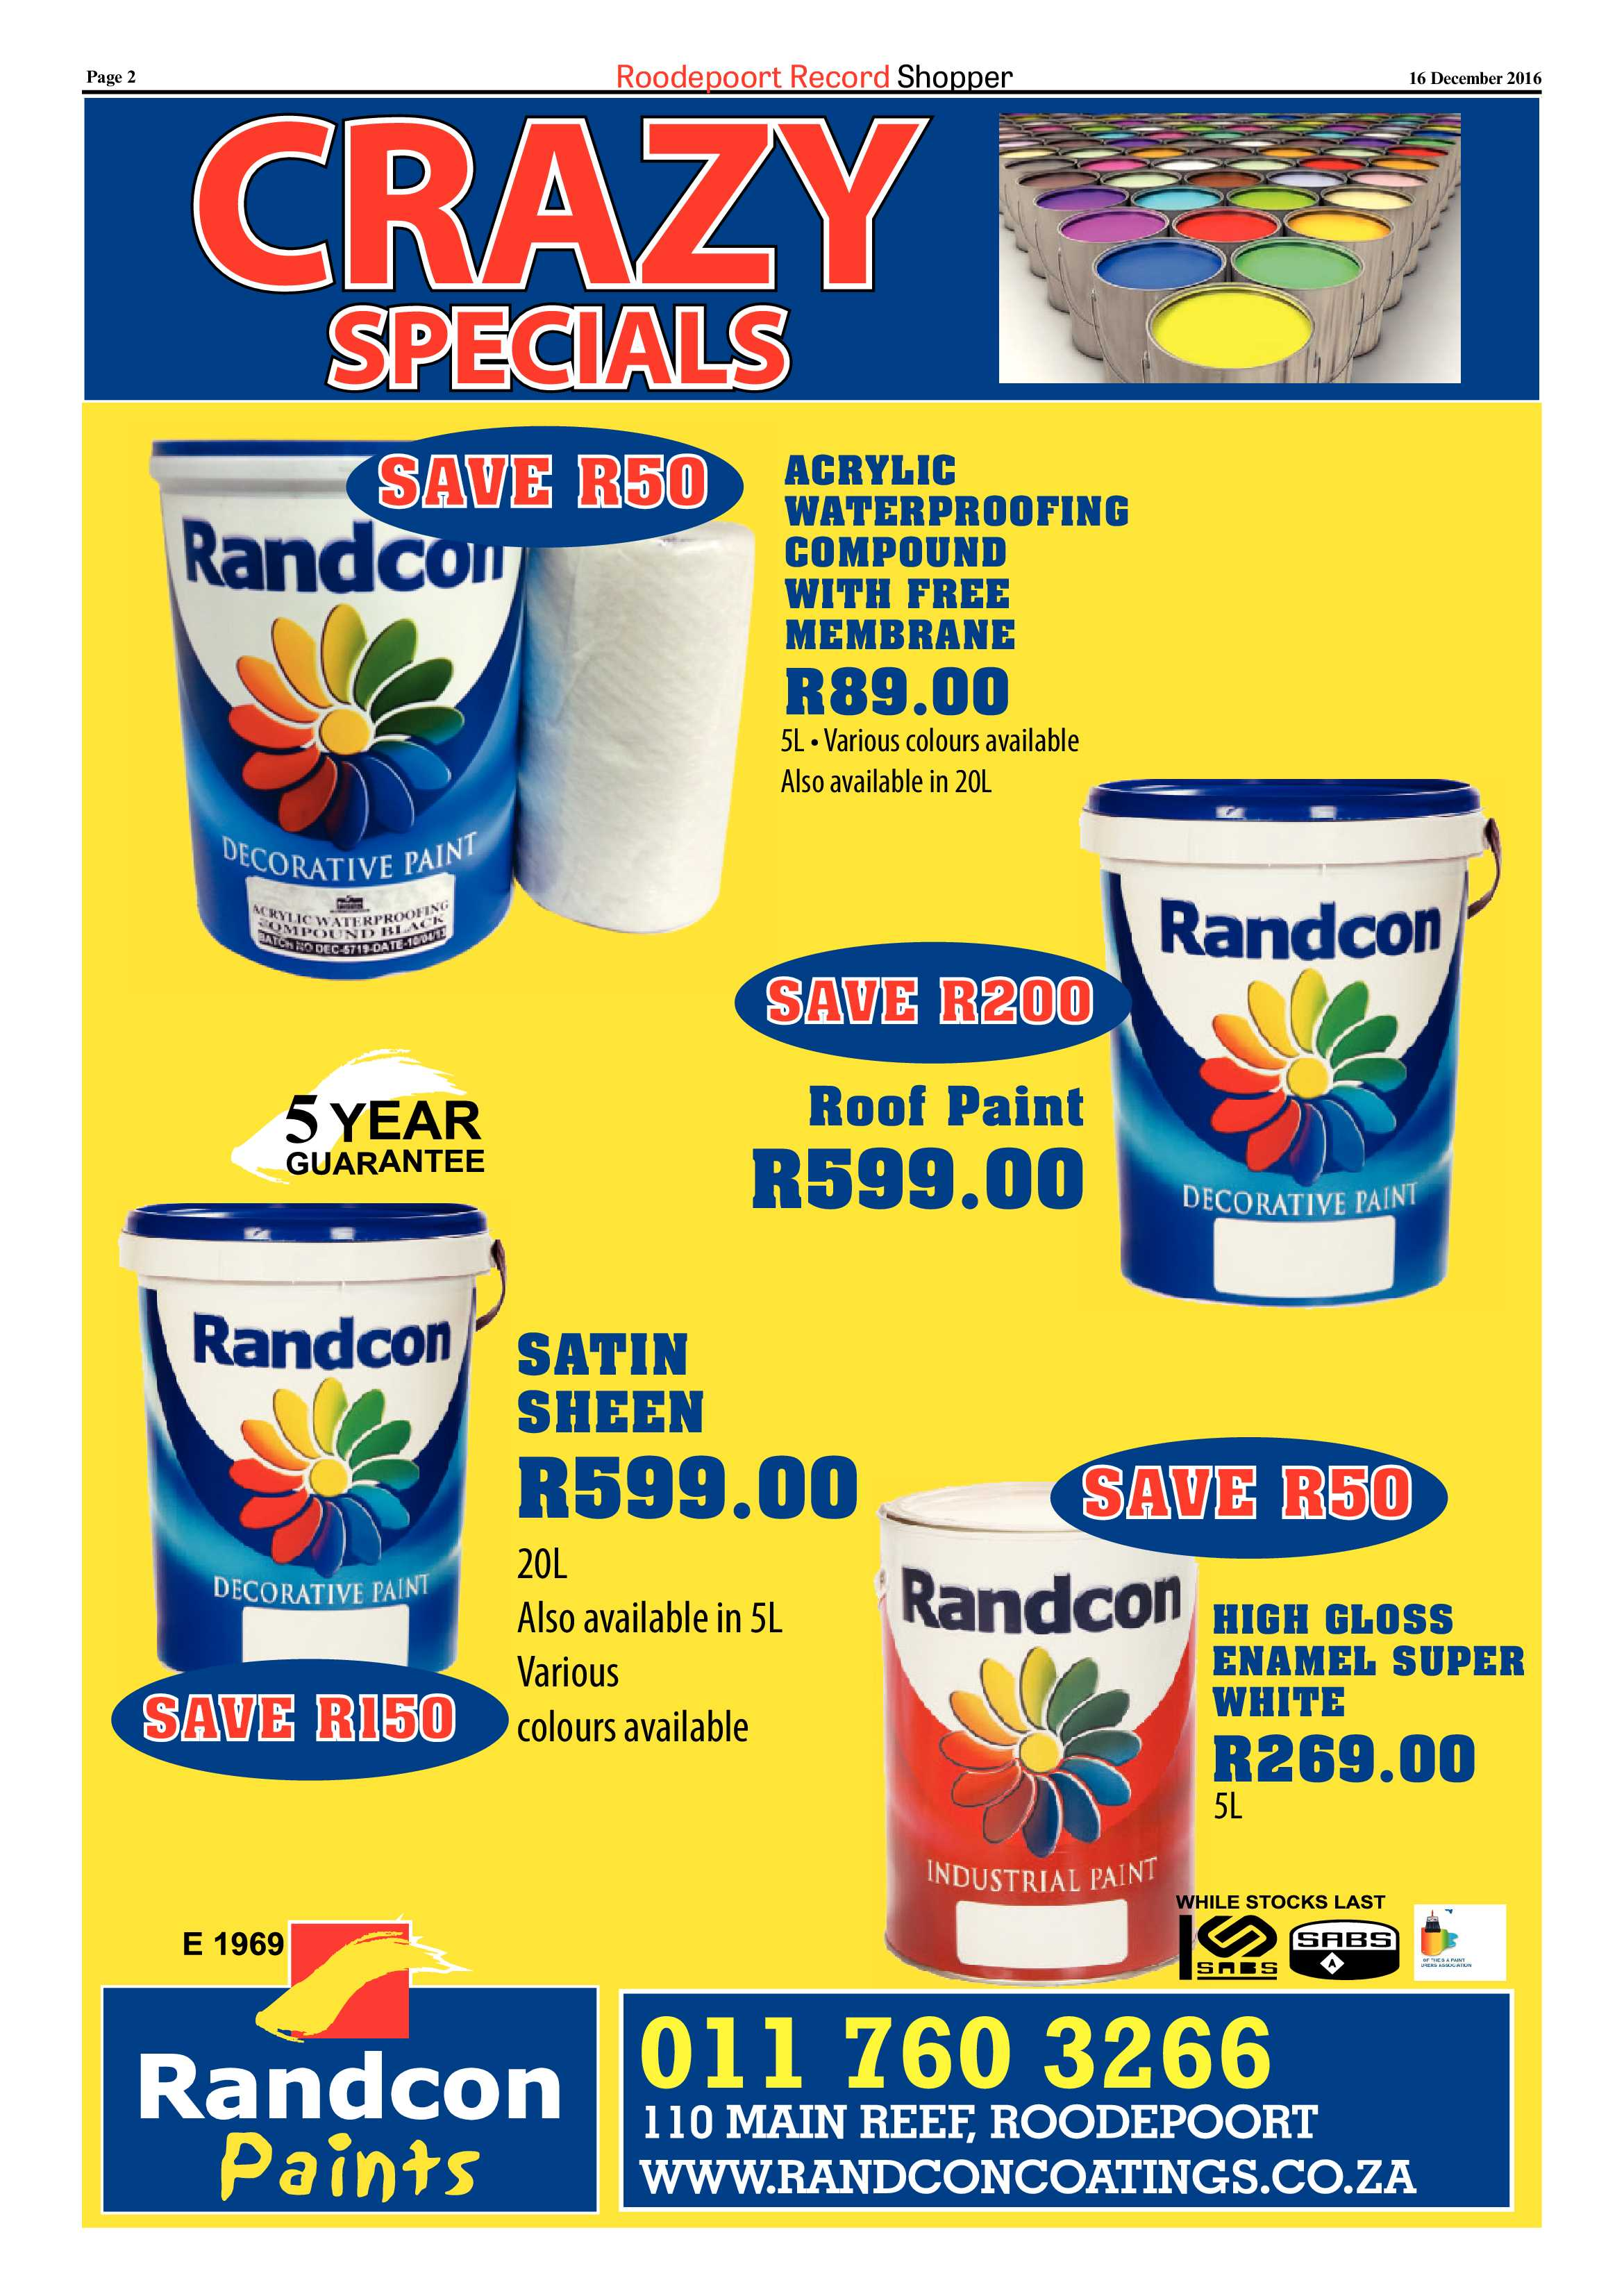 roodepoort-record-shopper-december-2016-epapers-page-2